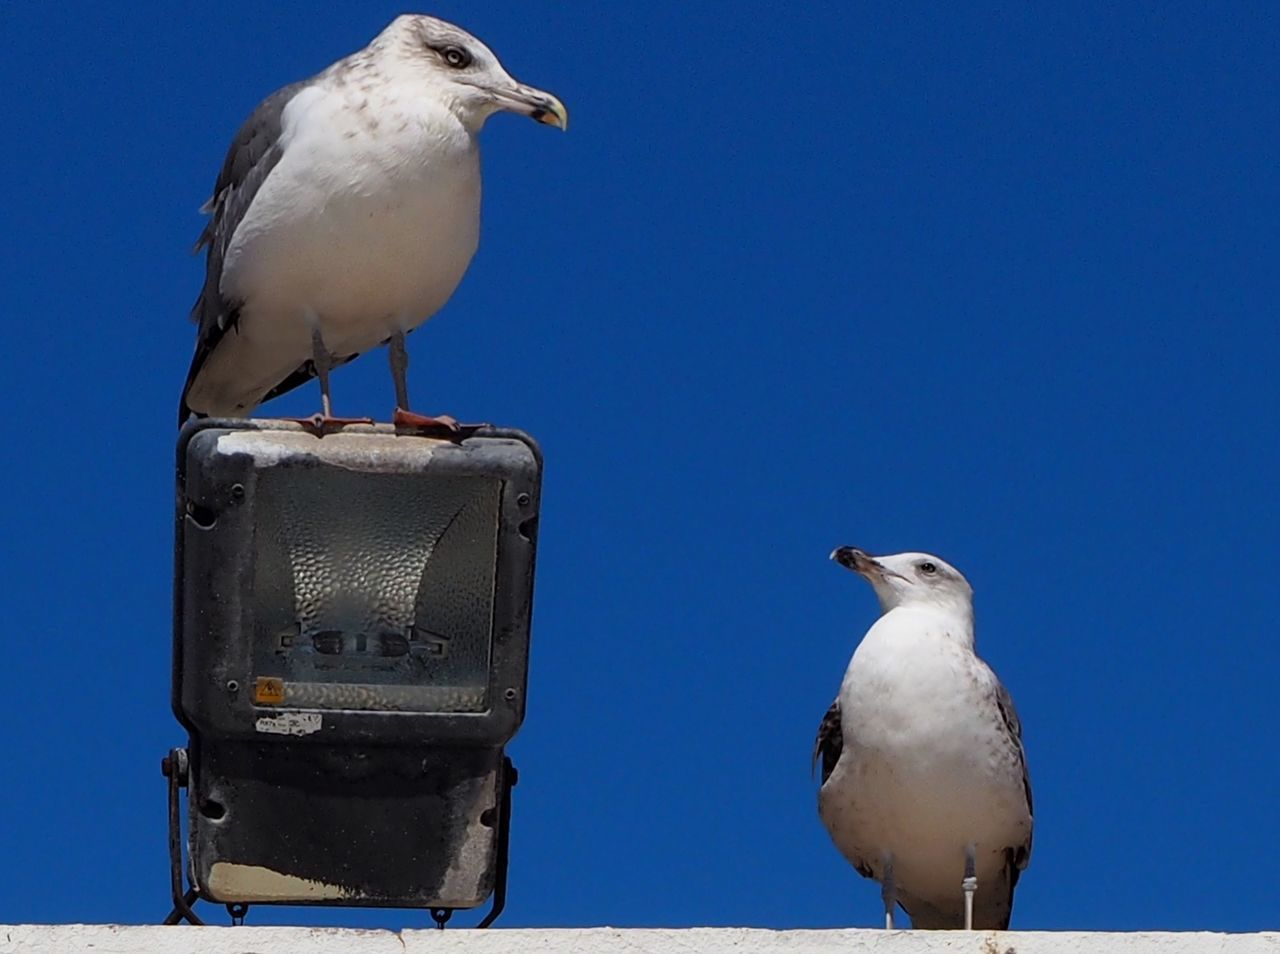 bird, animals in the wild, animal themes, animal wildlife, perching, seagull, one animal, day, outdoors, sea bird, nature, clear sky, no people, sunlight, close-up, sky